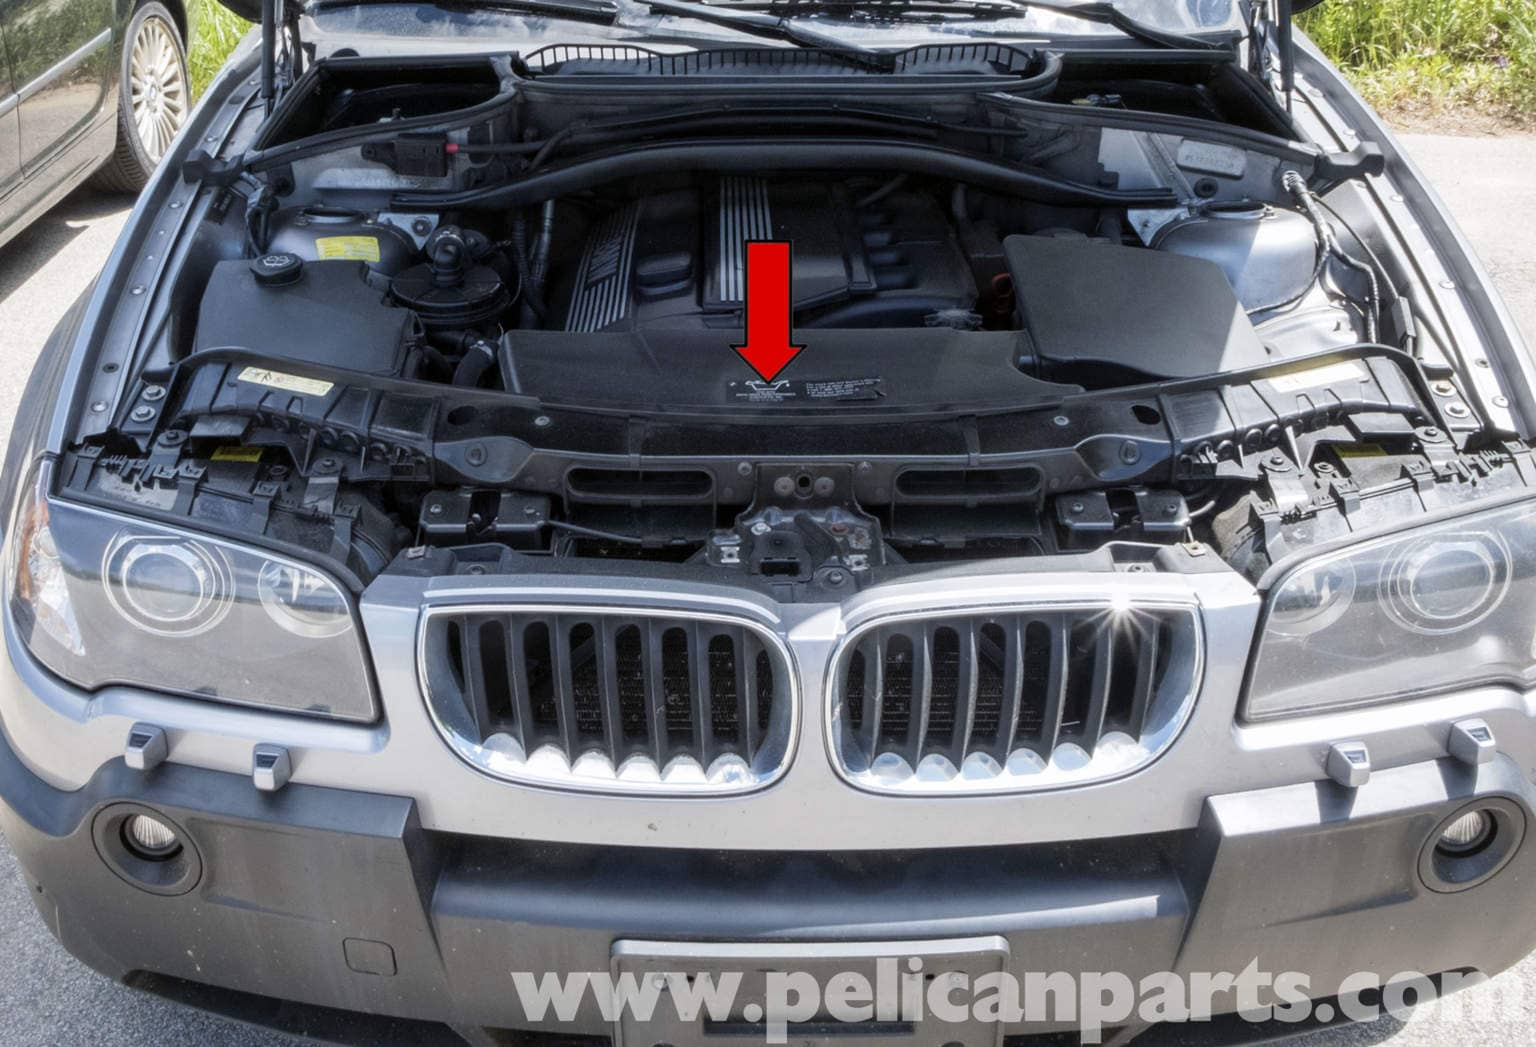 Pelican Parts Technical Article Bmw X3 Engine Cooling Fan Replacement